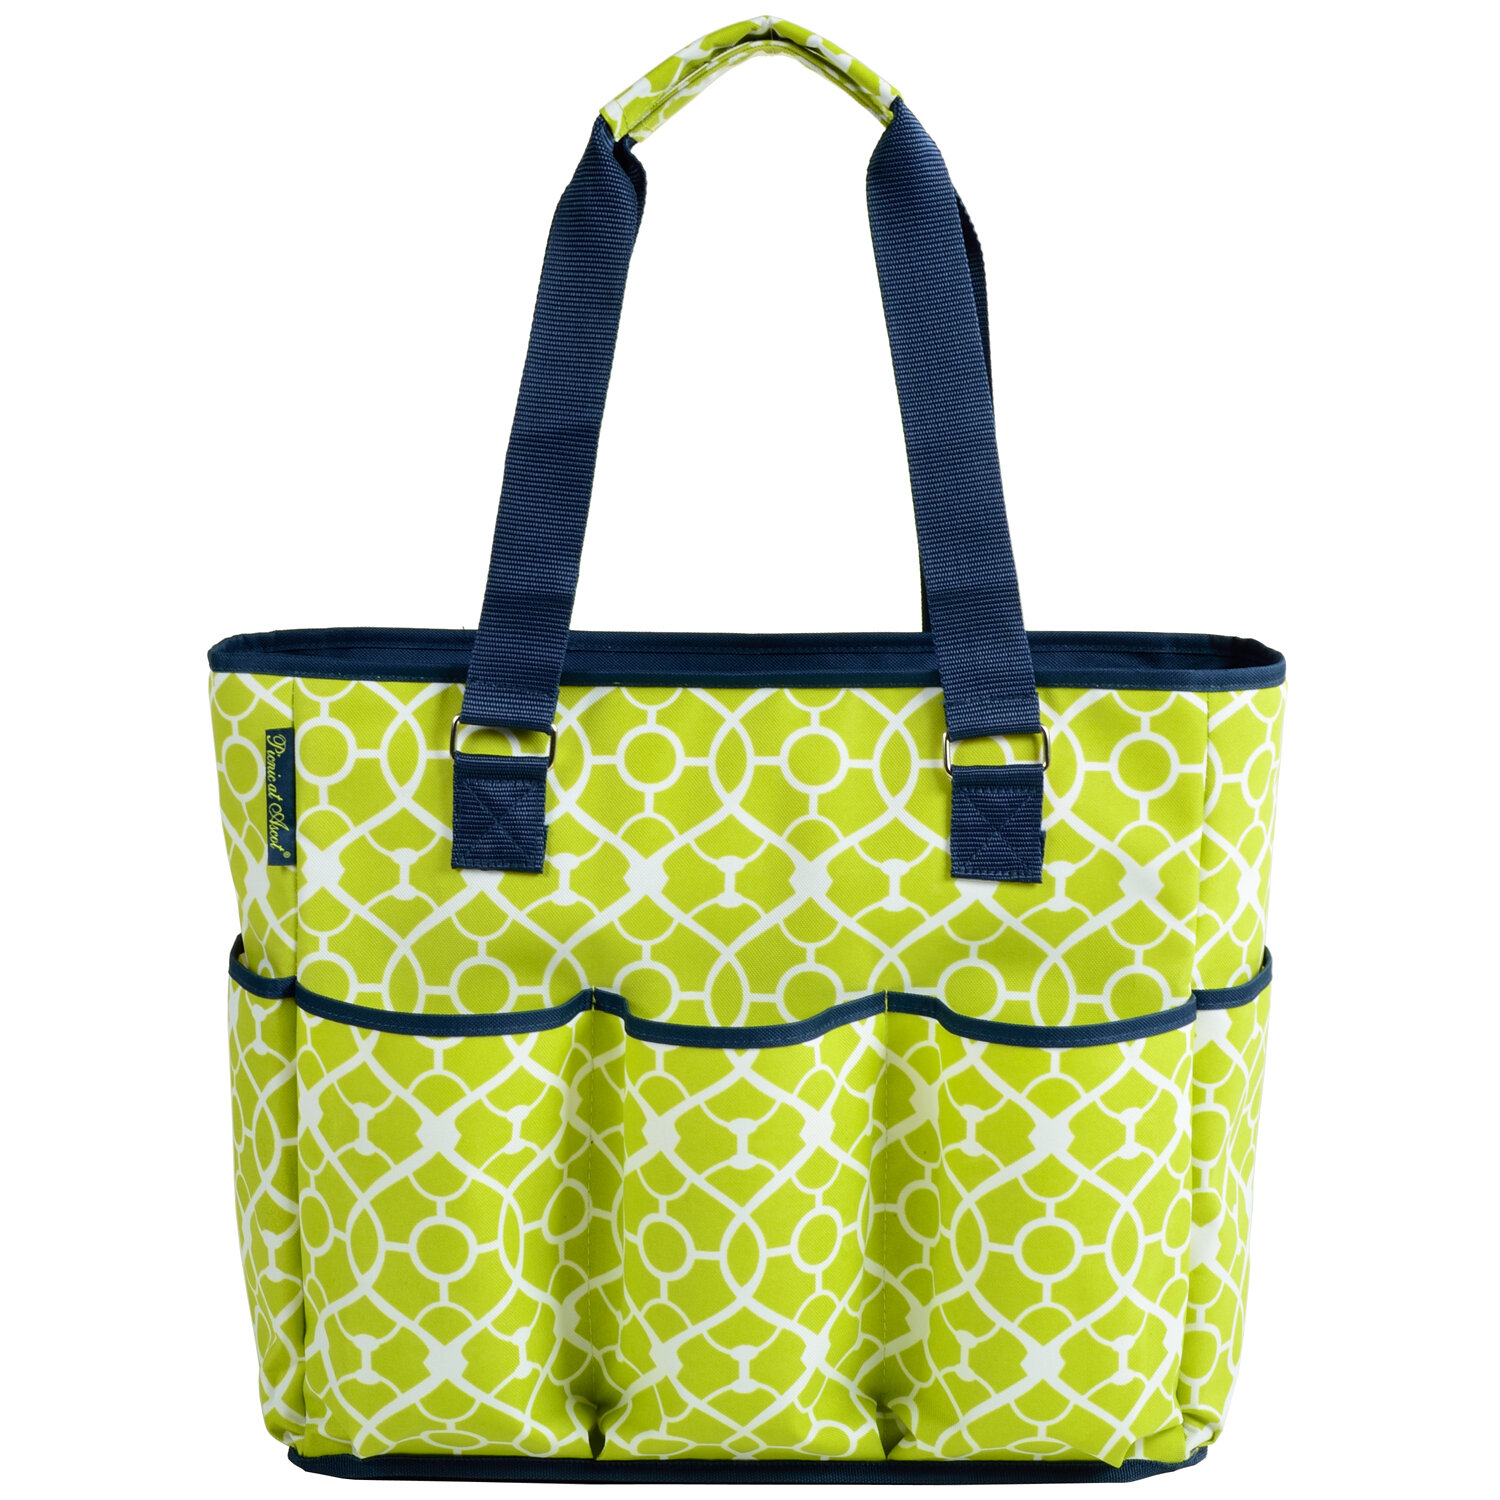 Picnic At Ascot 3 Can Large Insulated Multi Pocket Tote